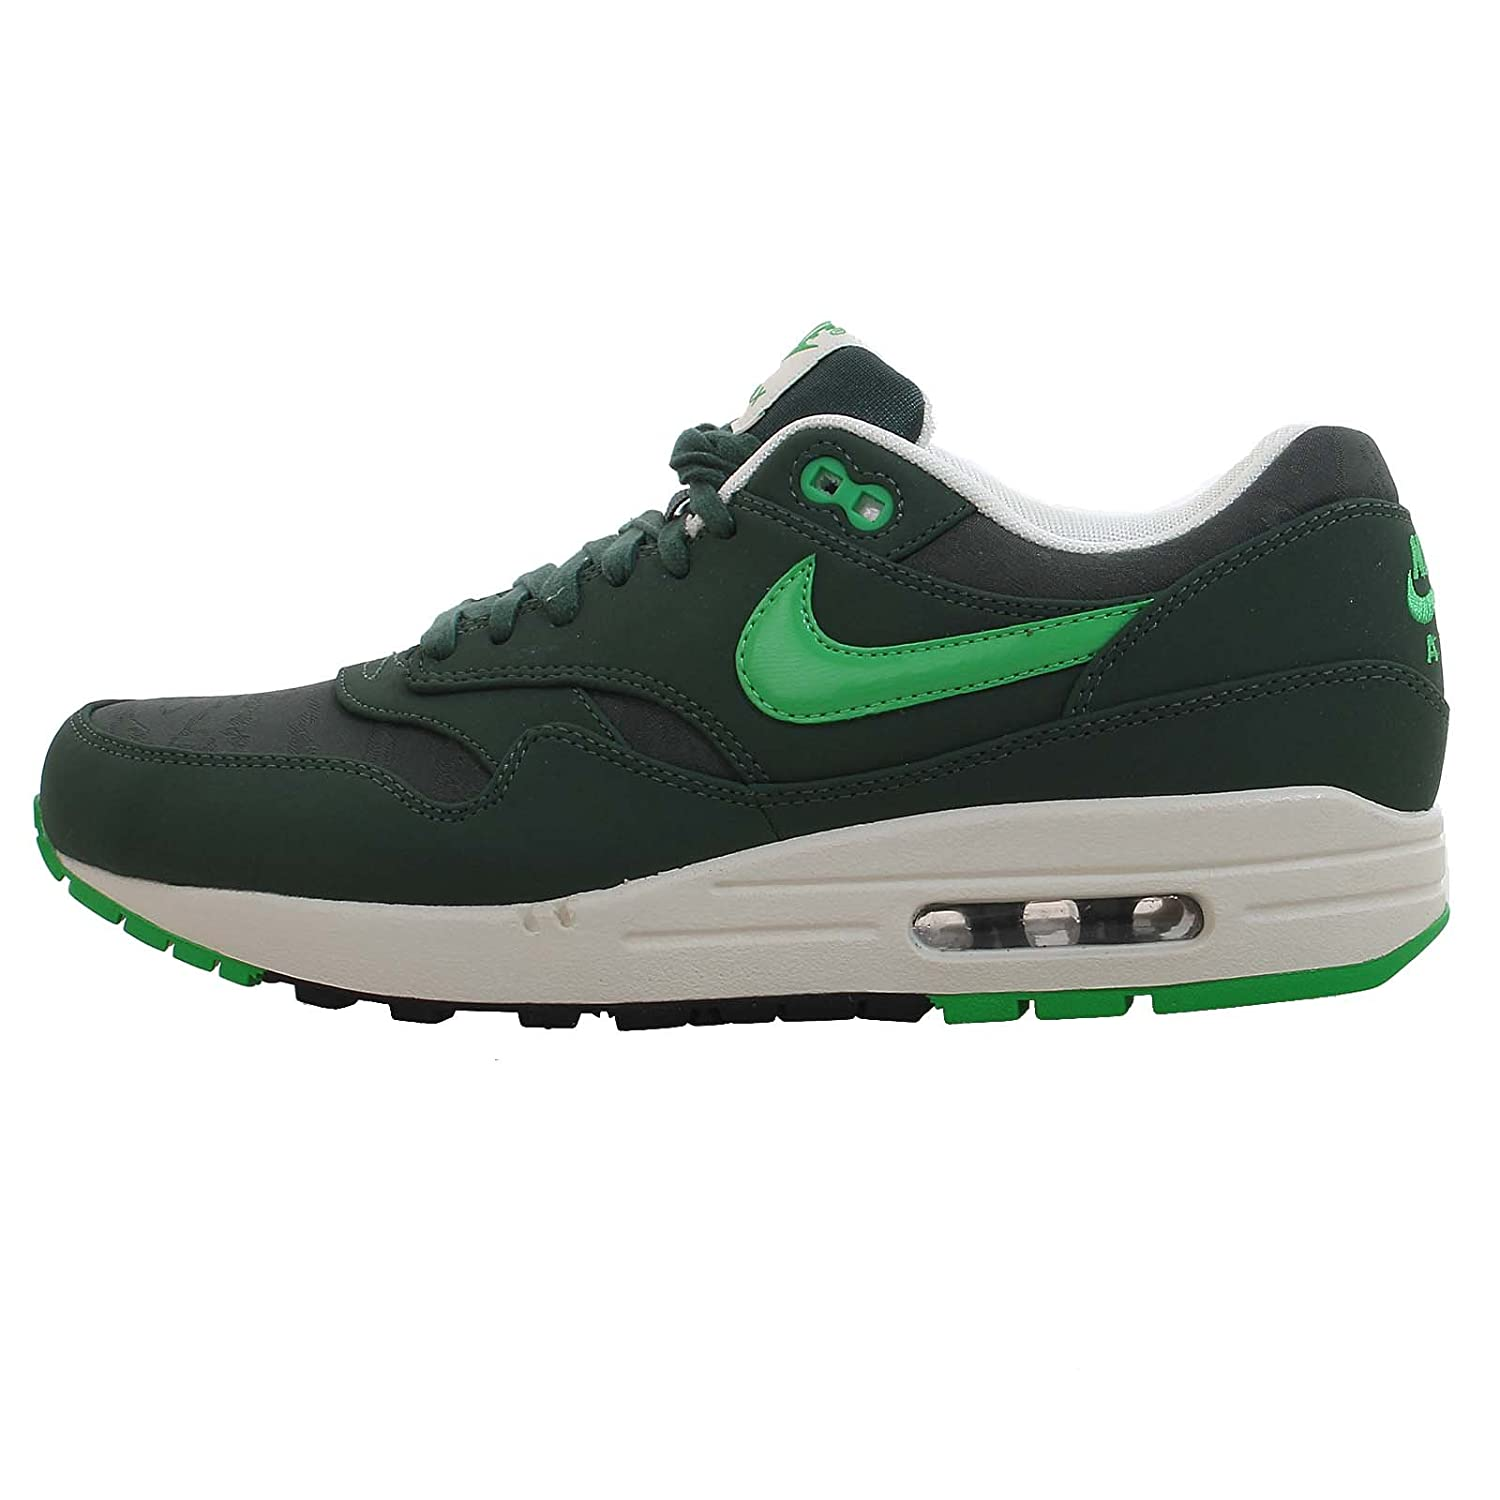 online store 363d7 d4238 NIKE Mens Air Max 1 Vintage Green Trainer Size 5.5 UK  Amazon.co.uk  Shoes    Bags